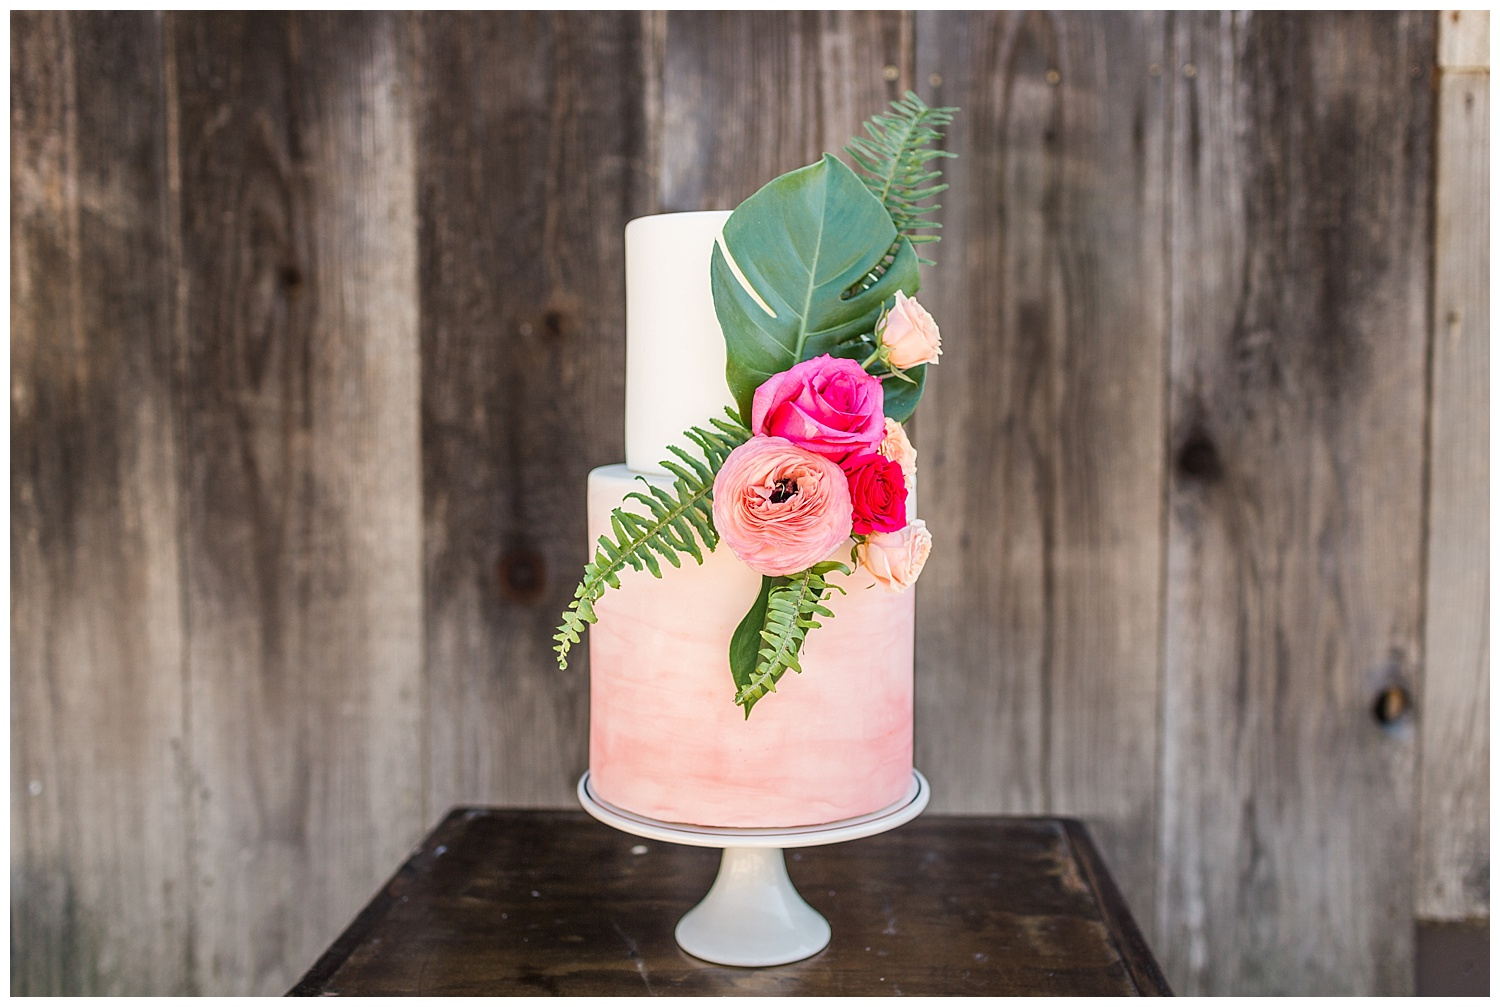 Tropical-cake-autumn-cake-design-higuera-styled-shoot.jpg